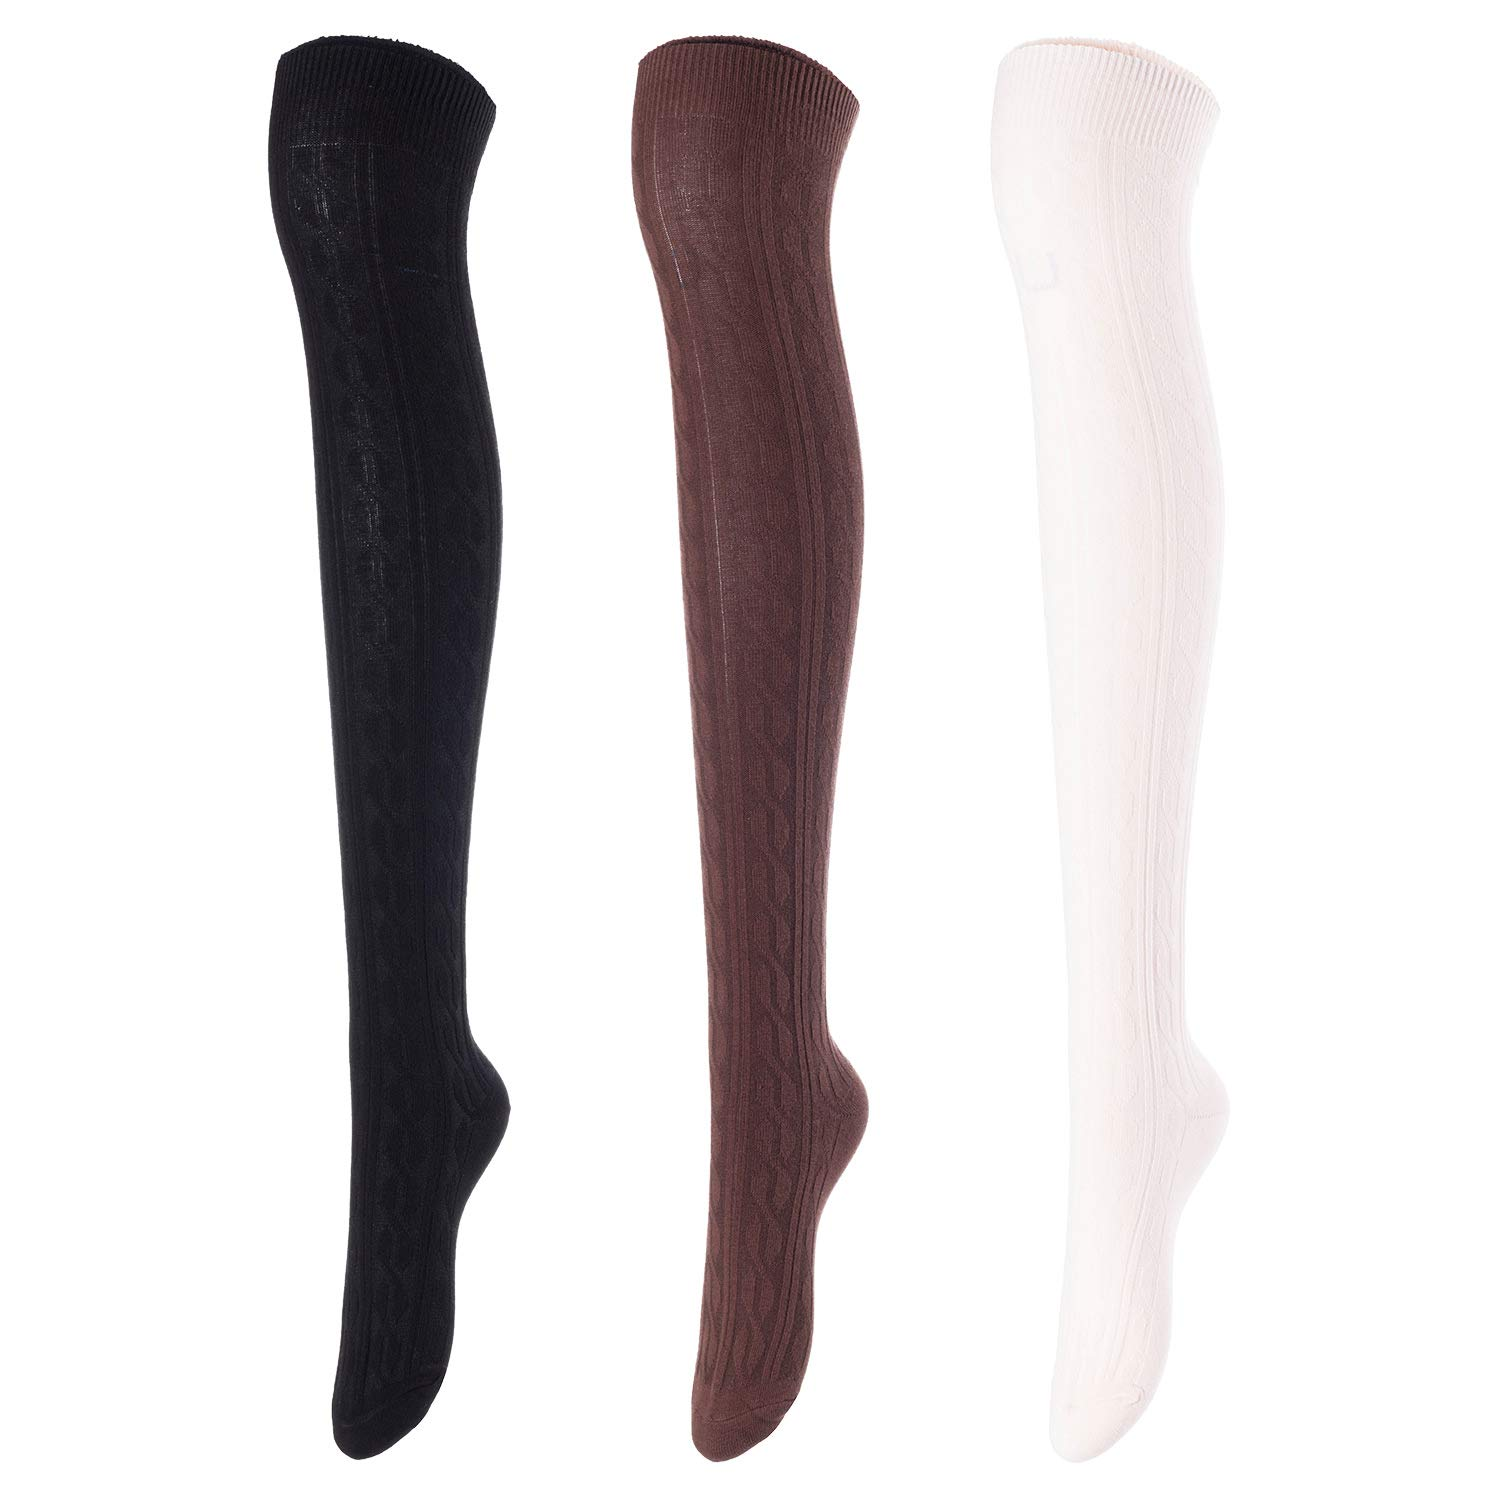 Lovely Annie Women's 3 Pairs Over Knee High Thigh High Cotton Socks Size 6-9 A1024